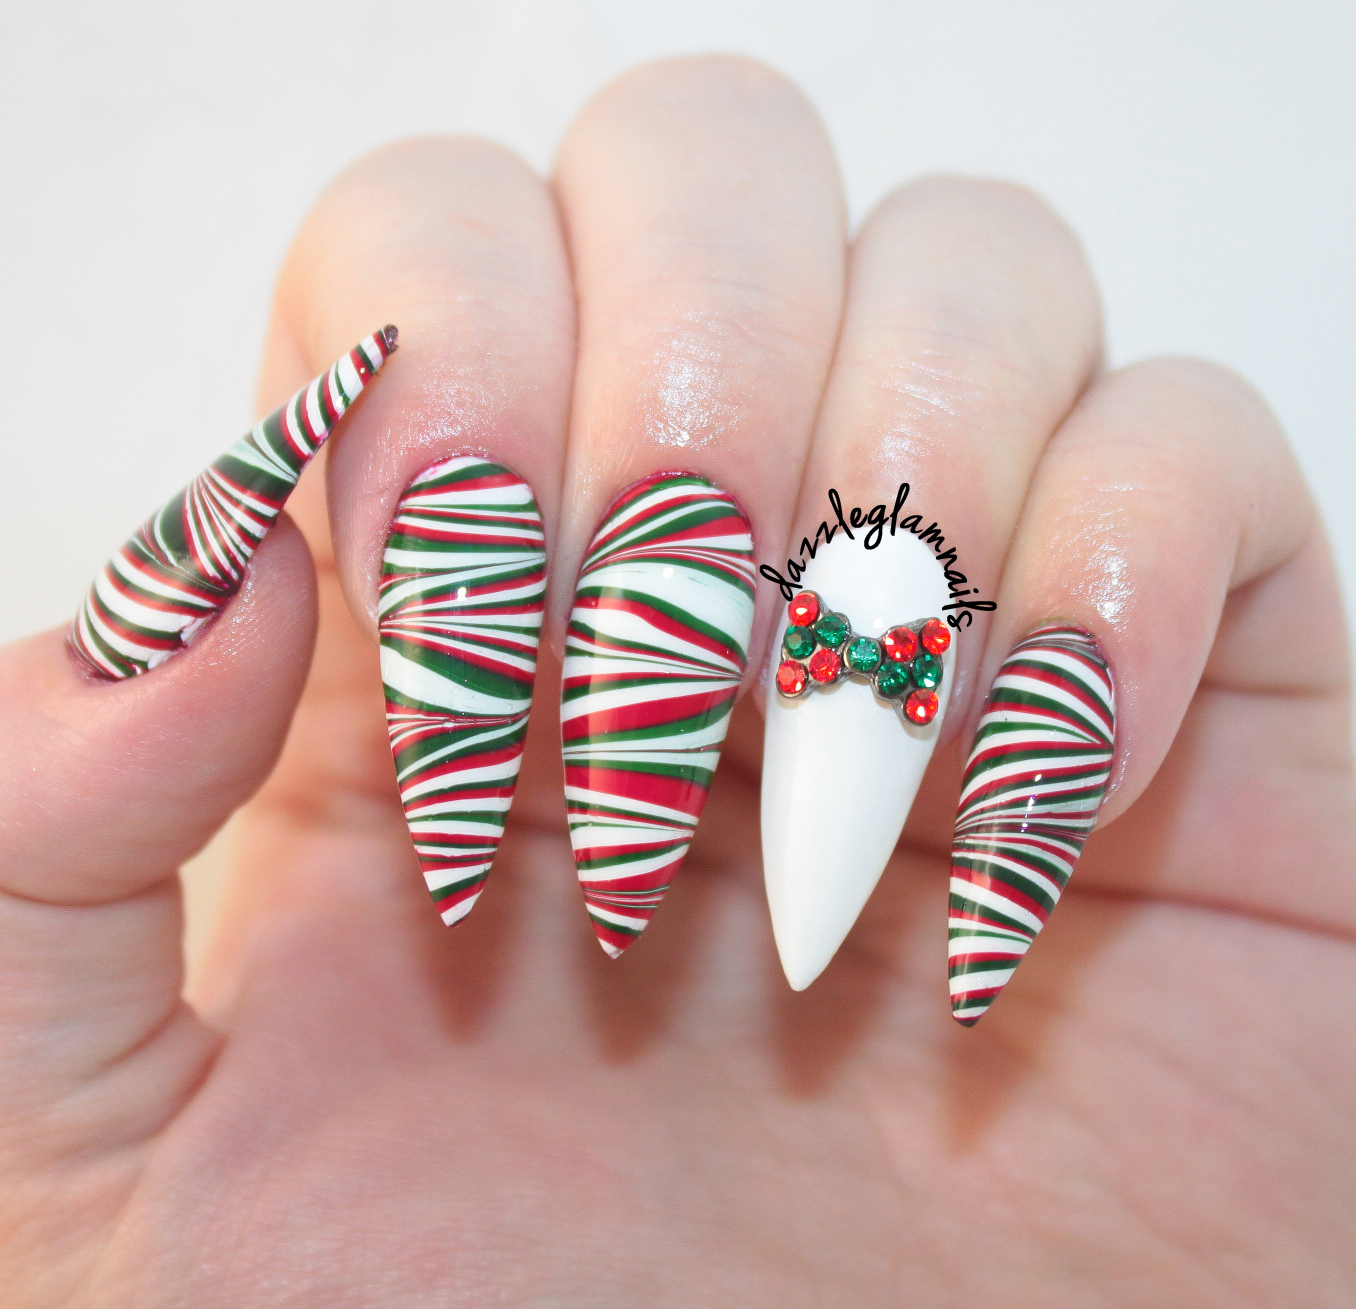 Dazzle Glam Nails | Nail Art Blog: Christmas Water Marble Nail Design